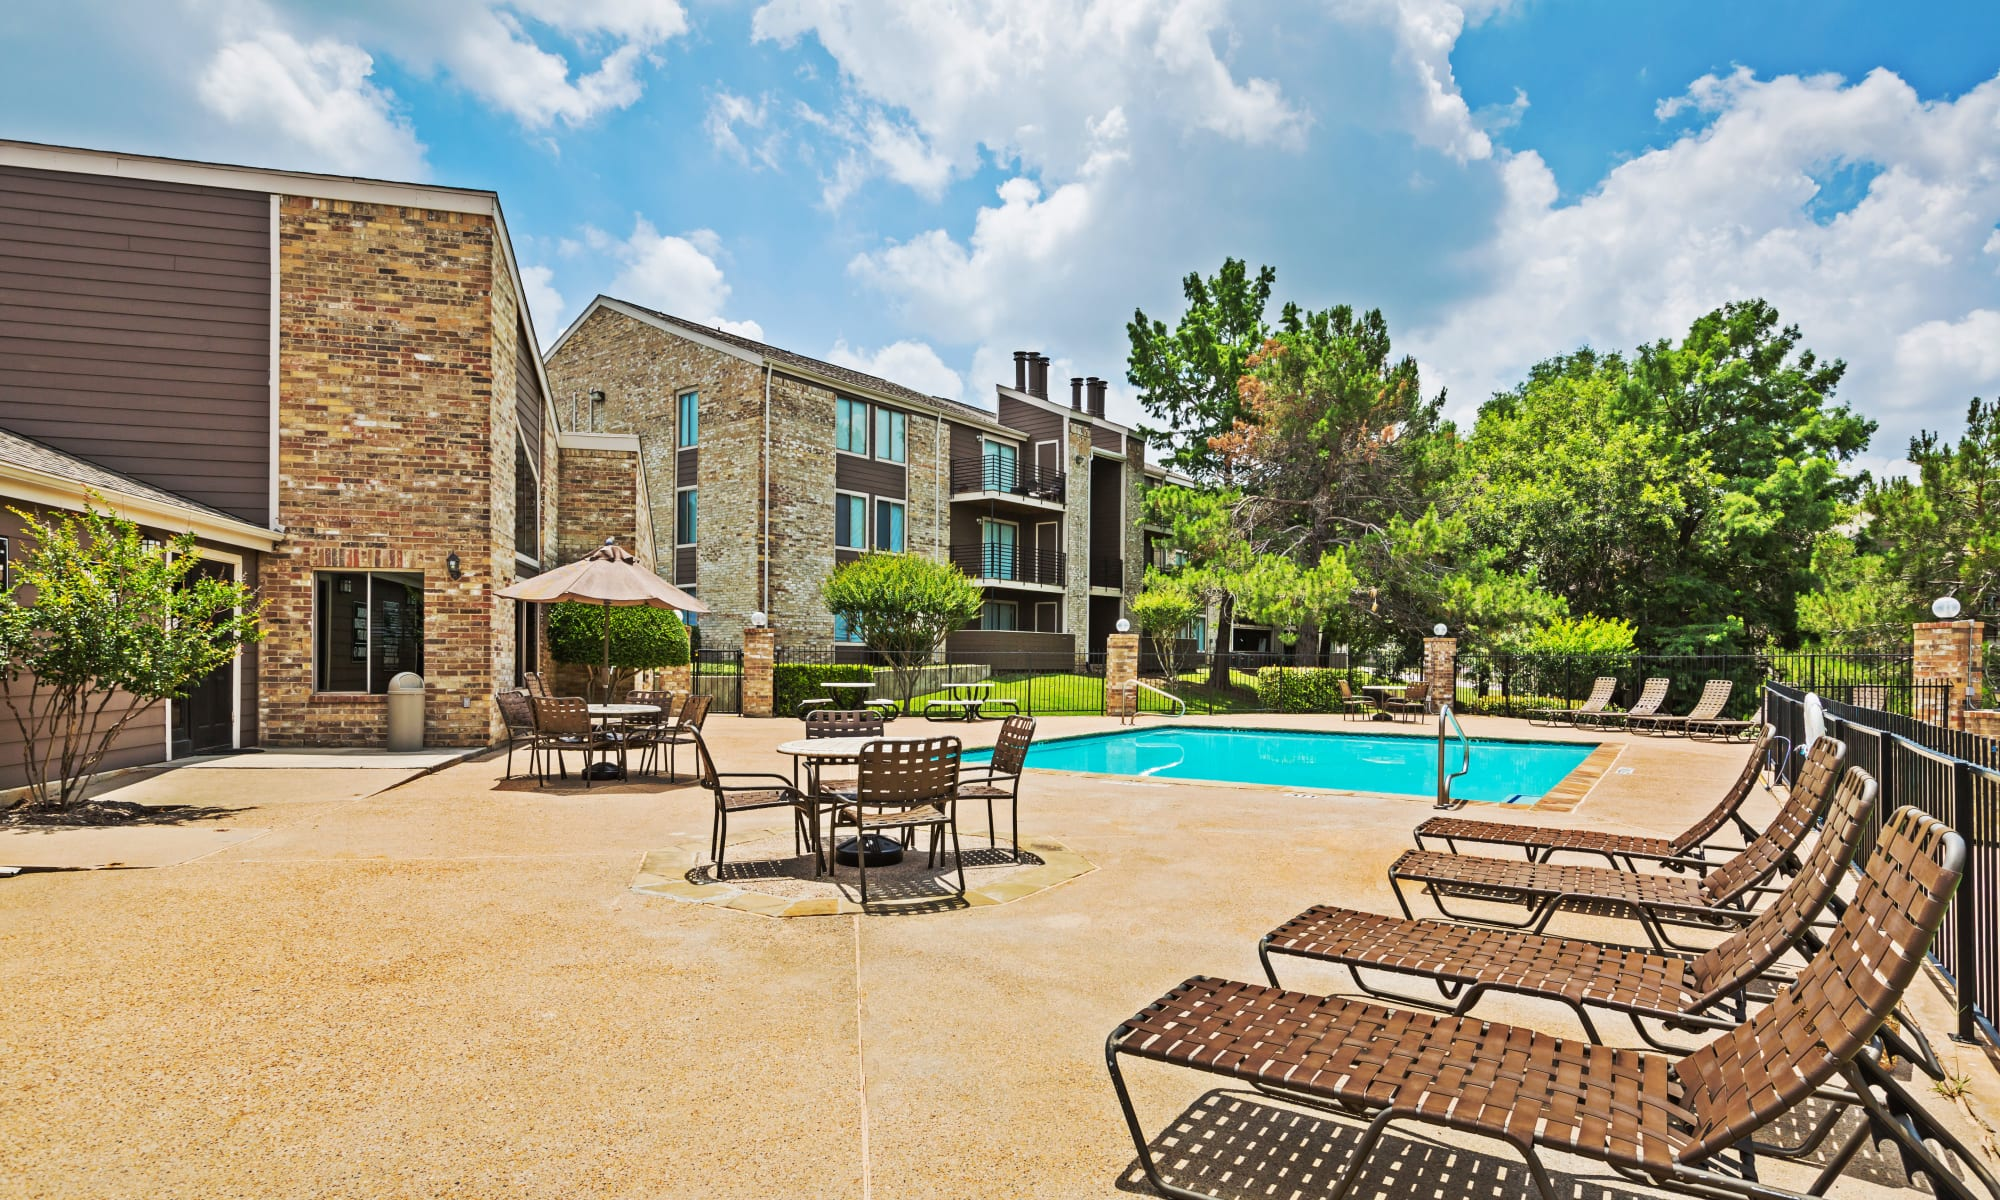 Apartments at The Belmont in Grand Prairie, Texas